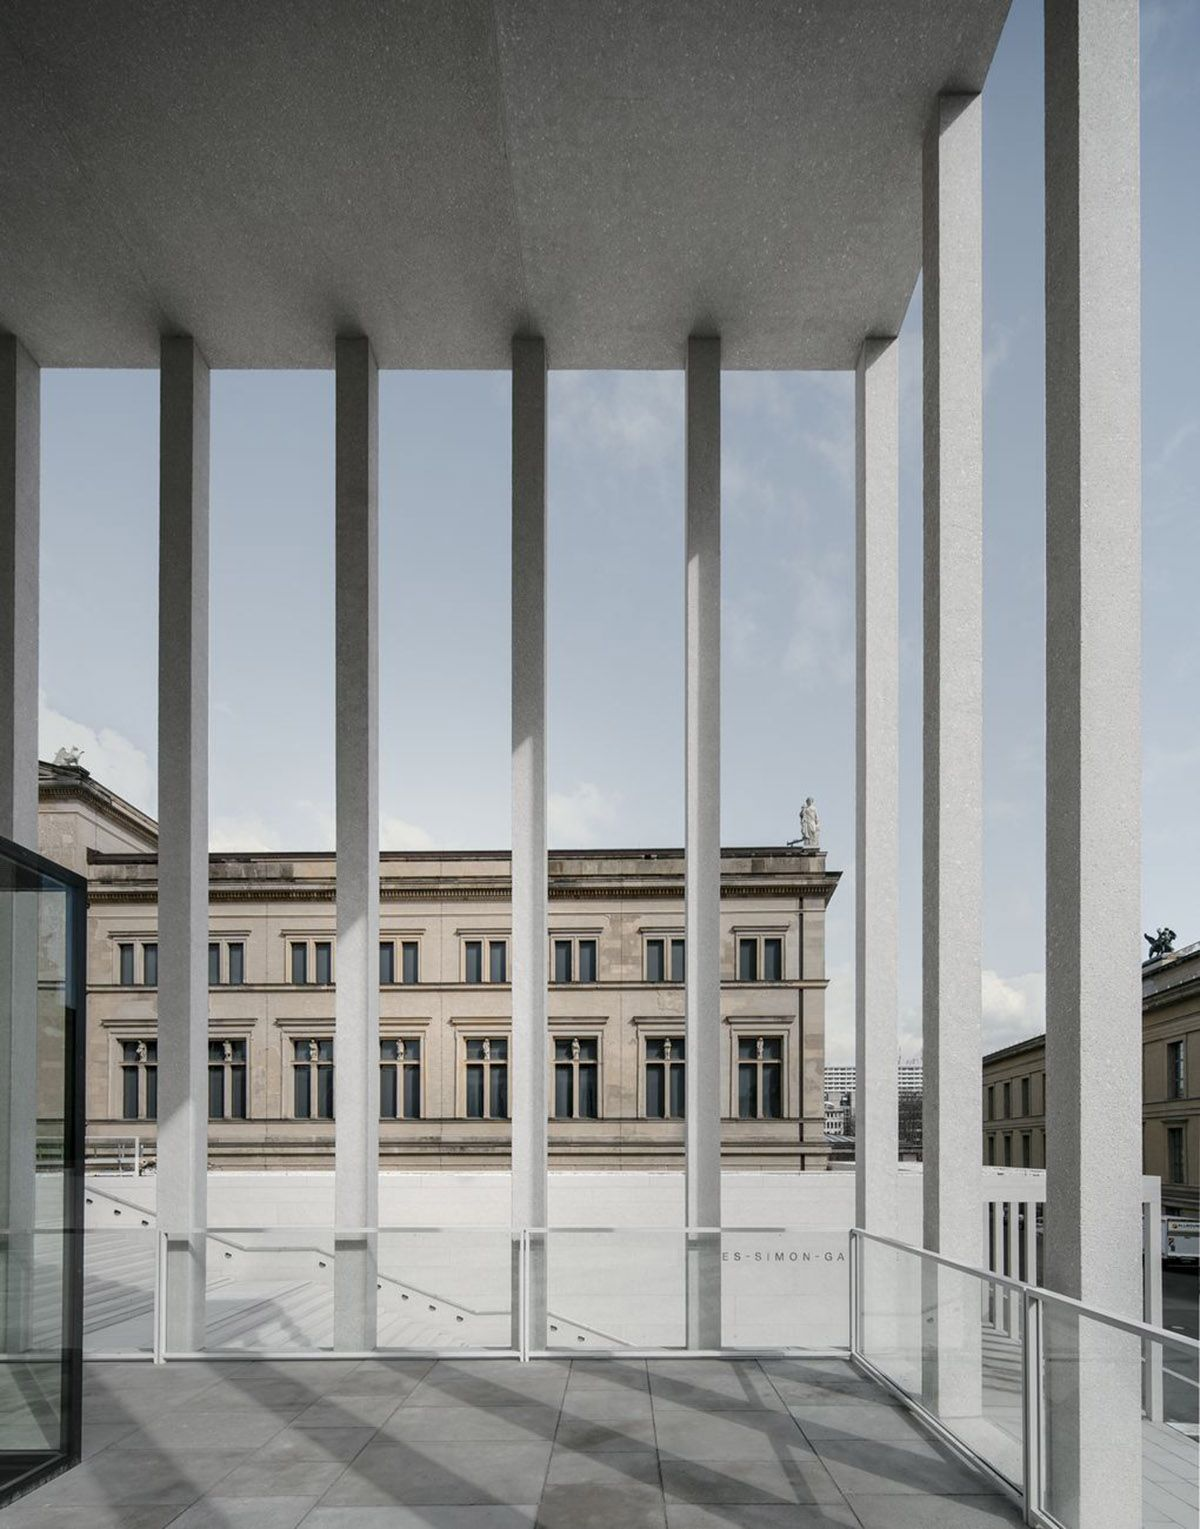 David Chipperfield Architects Opens James Simon Galerie On Berlin S Museum Island 이미지 포함